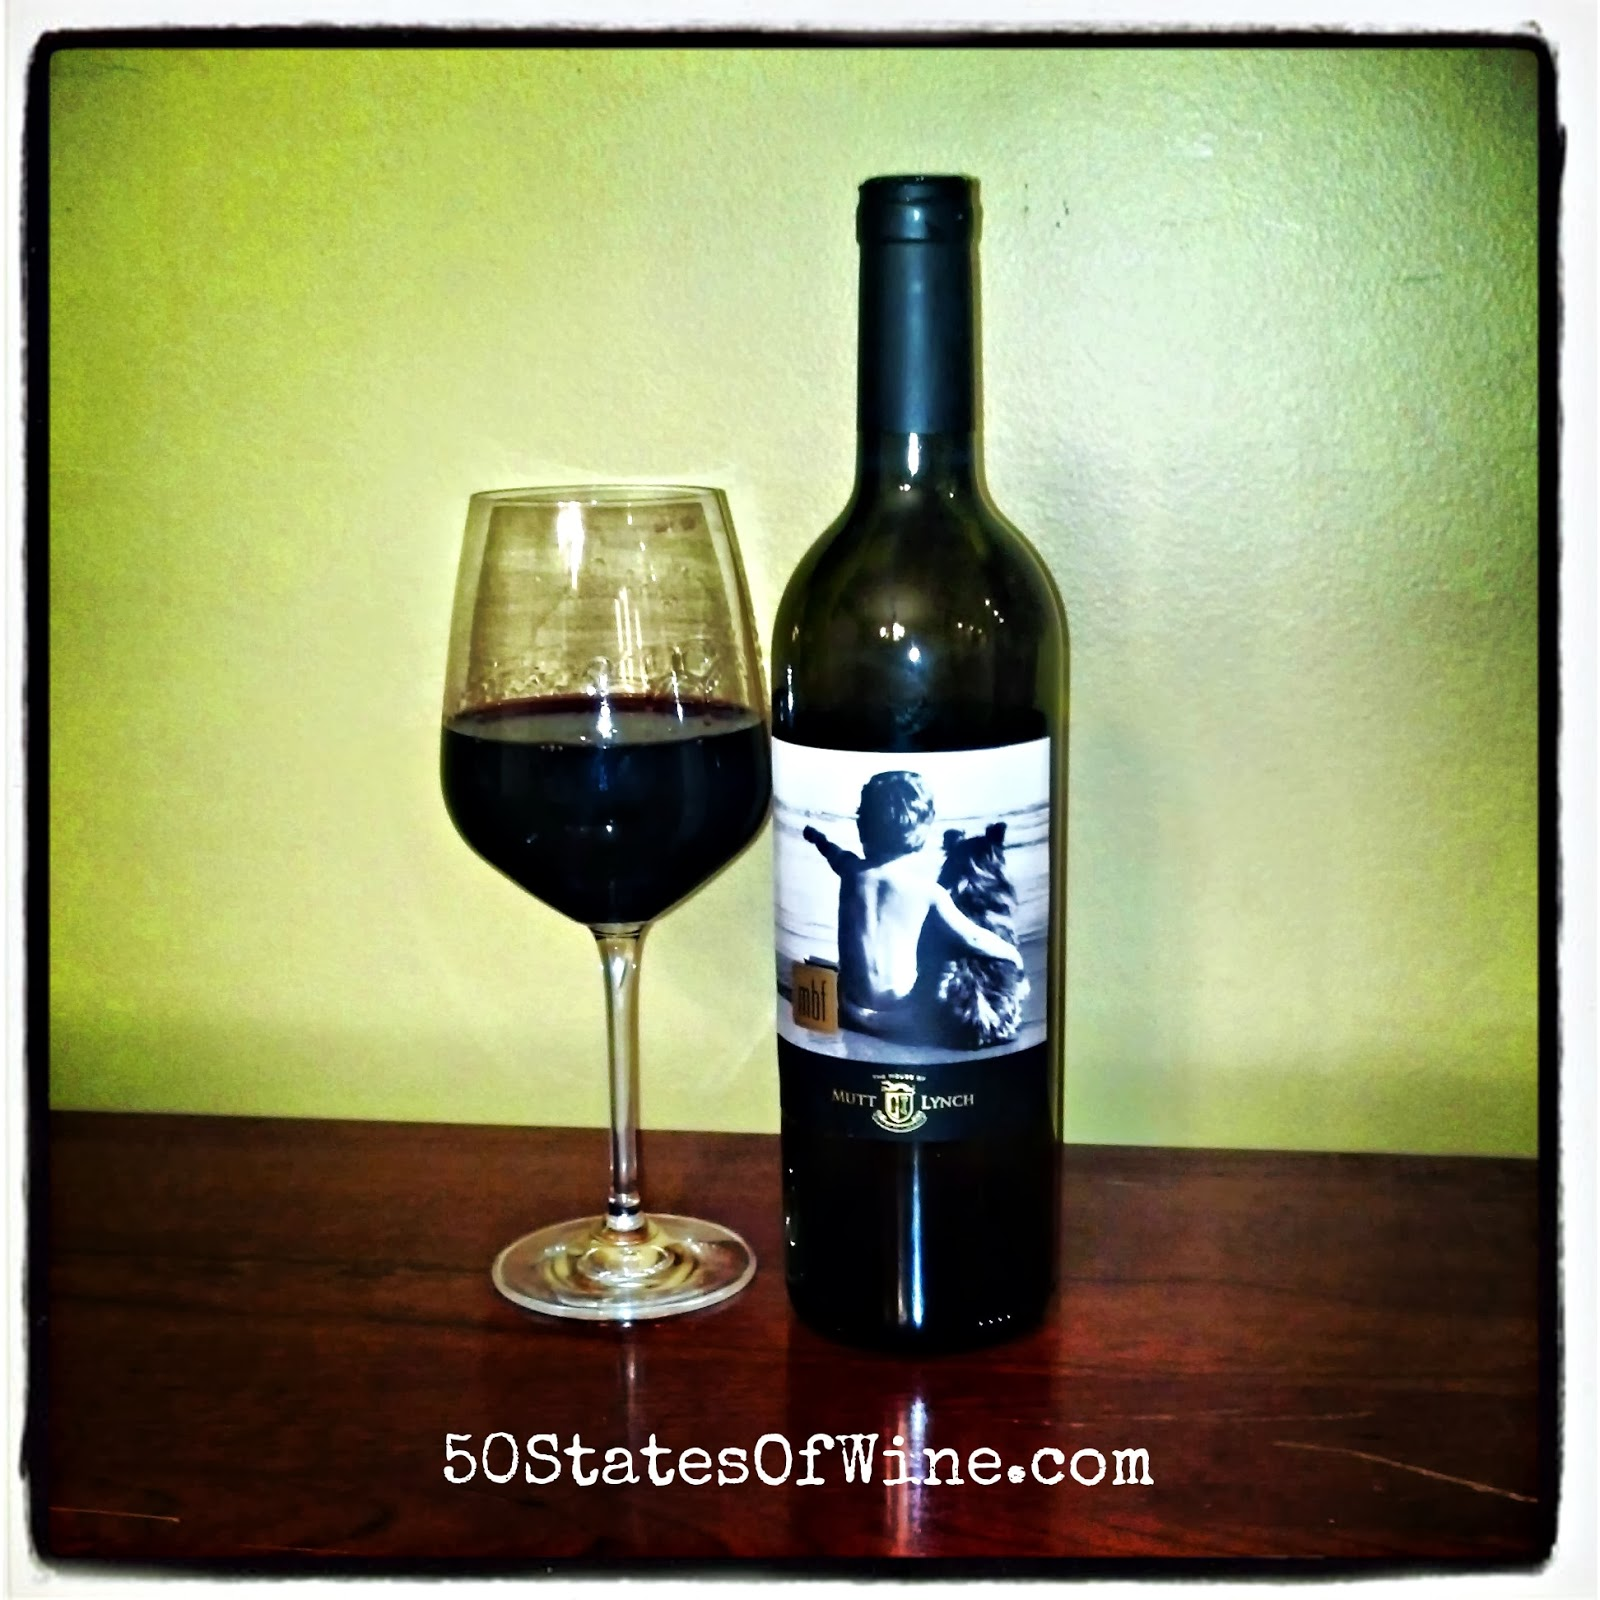 Mutt Lynch mbf Petite Sirah, Perotti Vineyard Dry Creek Valley—Sonoma County 2009